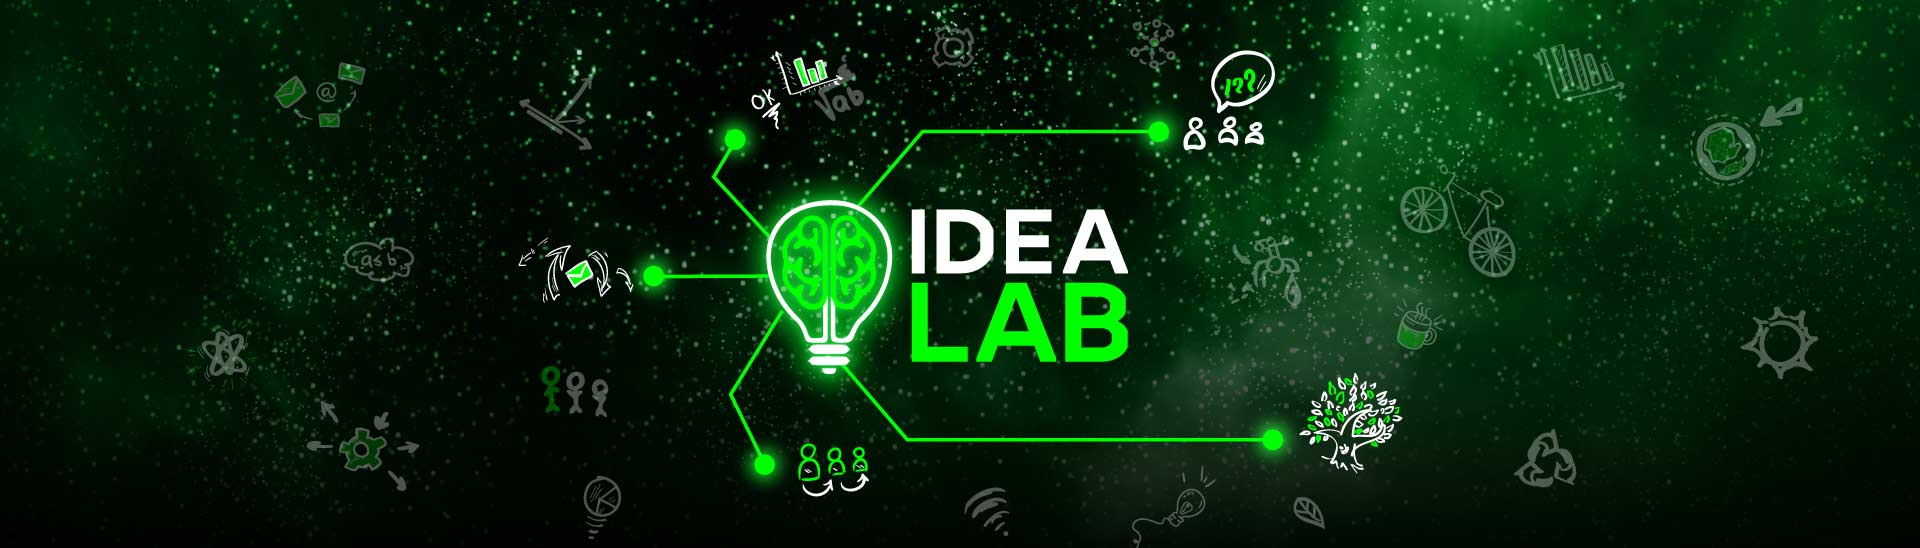 Invitación al IdeaLab 2019.